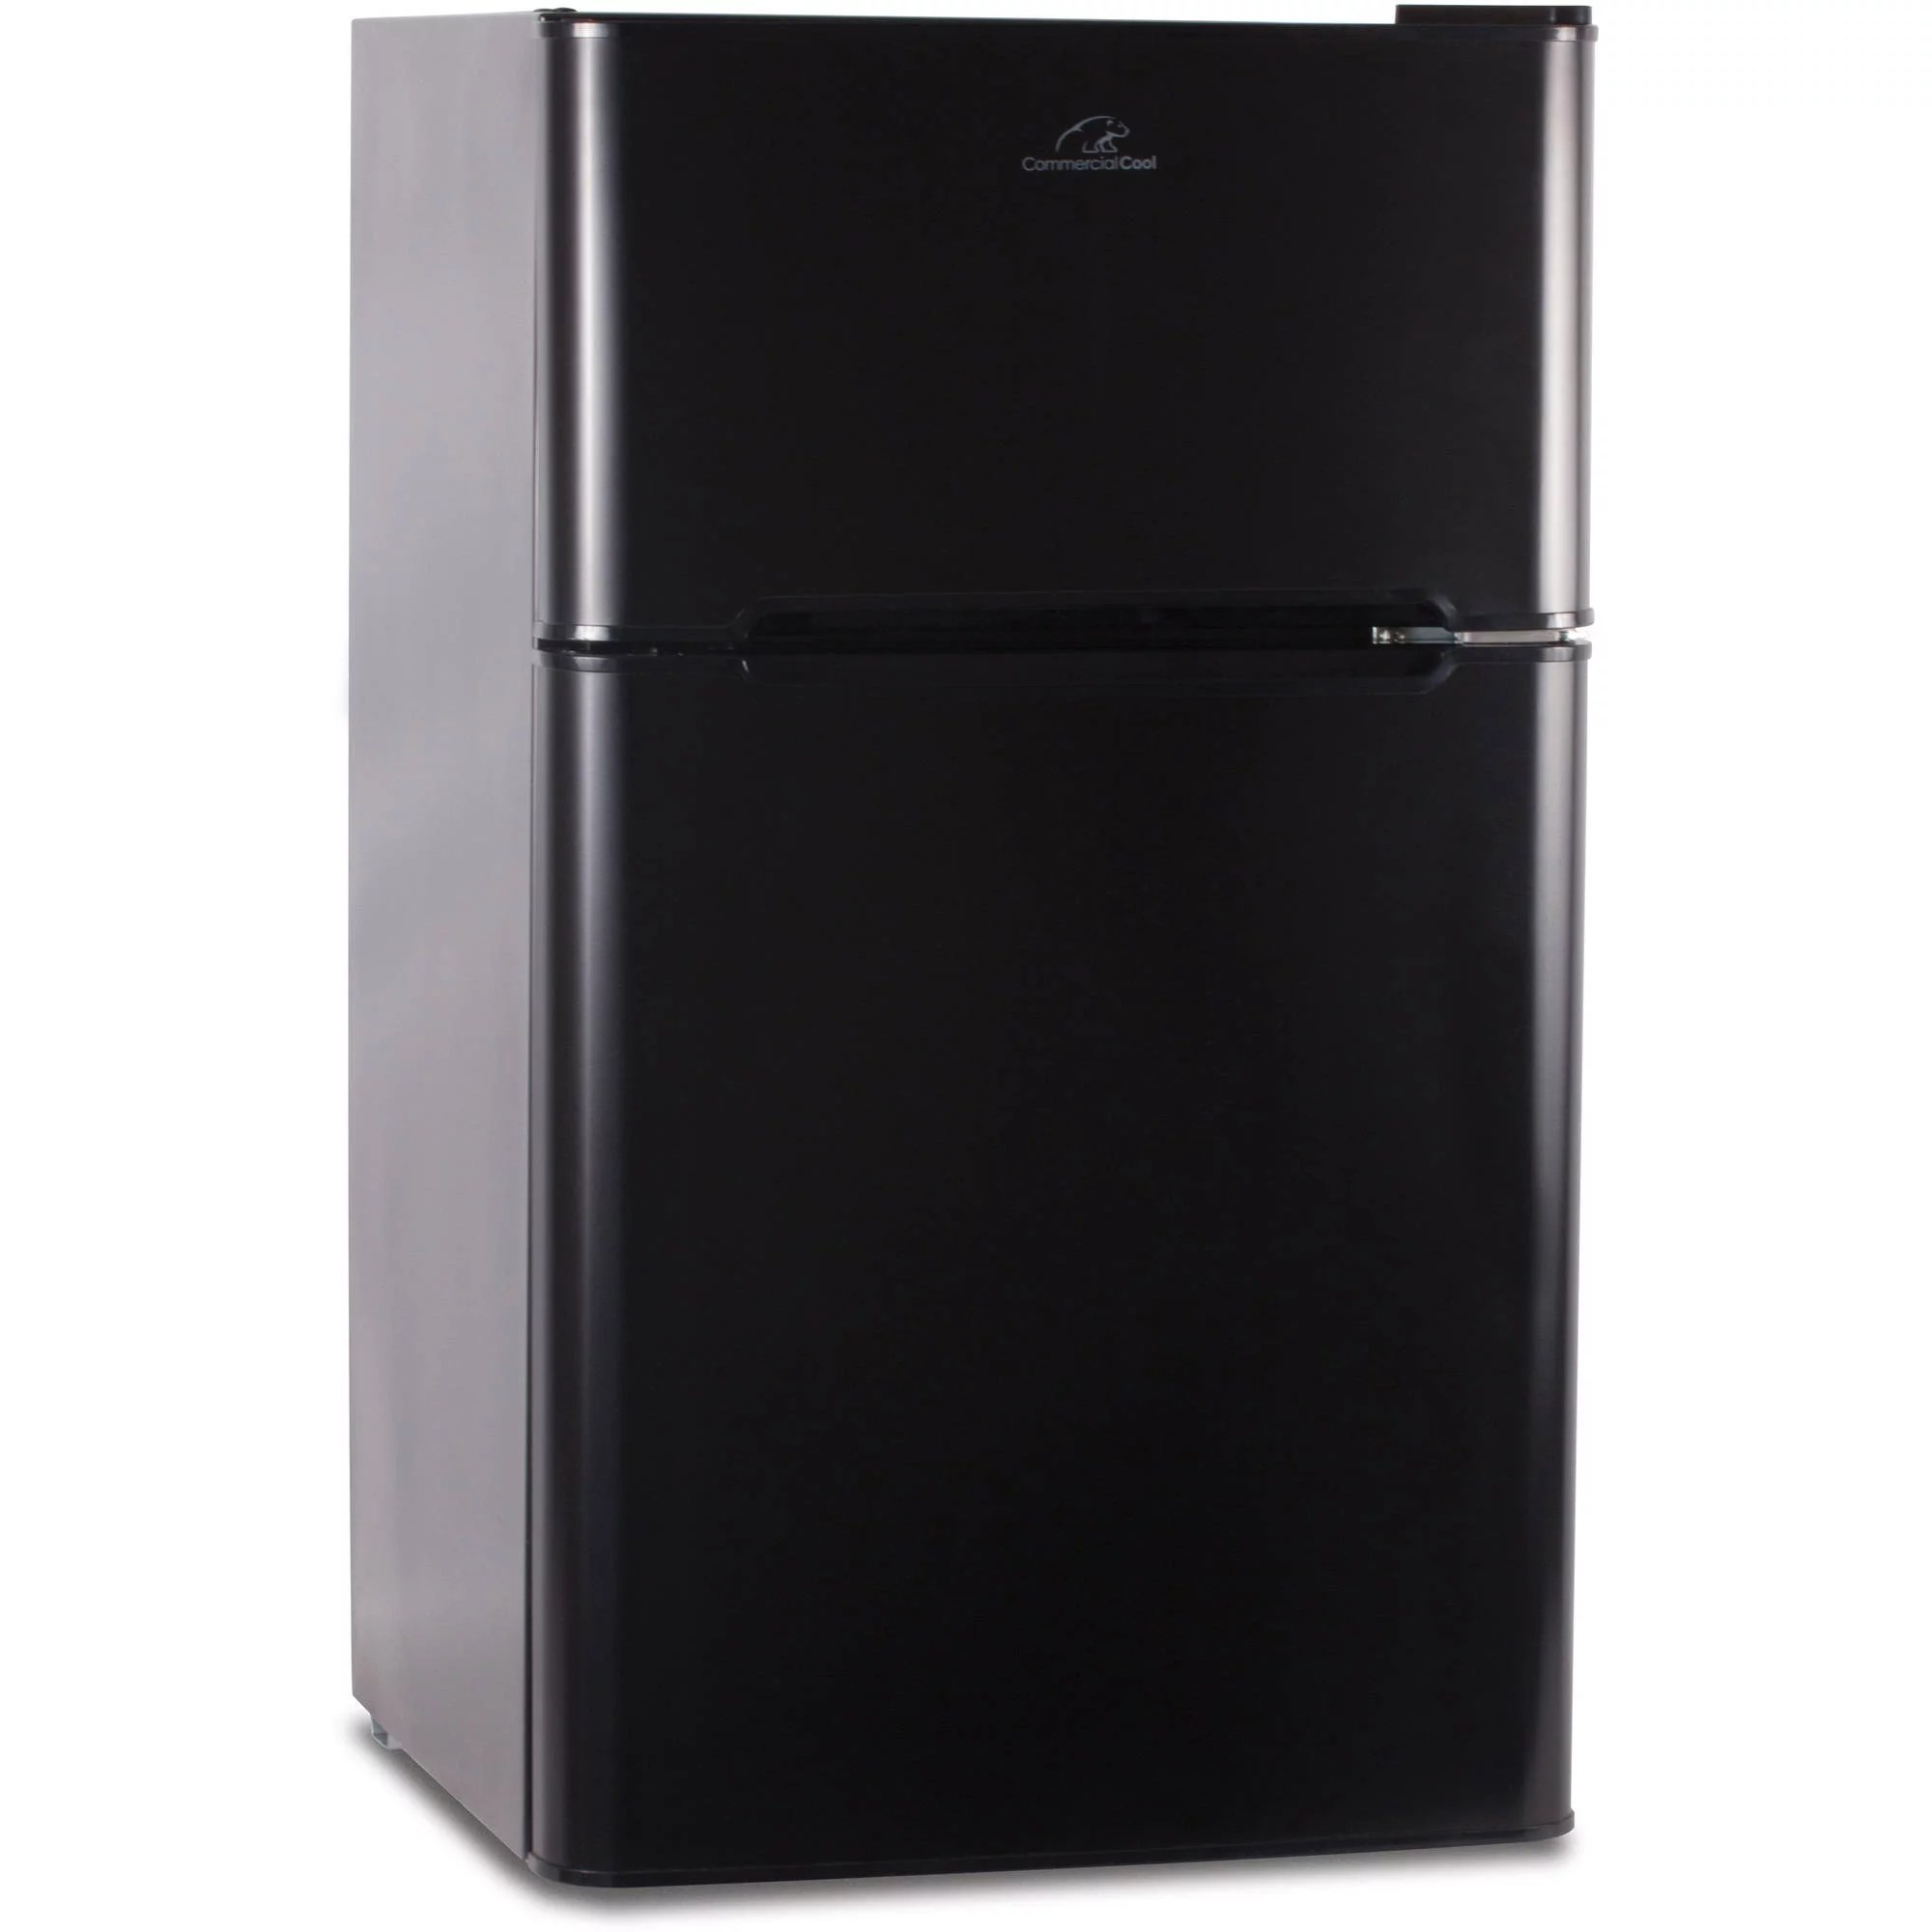 Fridge Freezer Commercial Cool 3 2 Cu Ft Refrigerator With Freezer Black